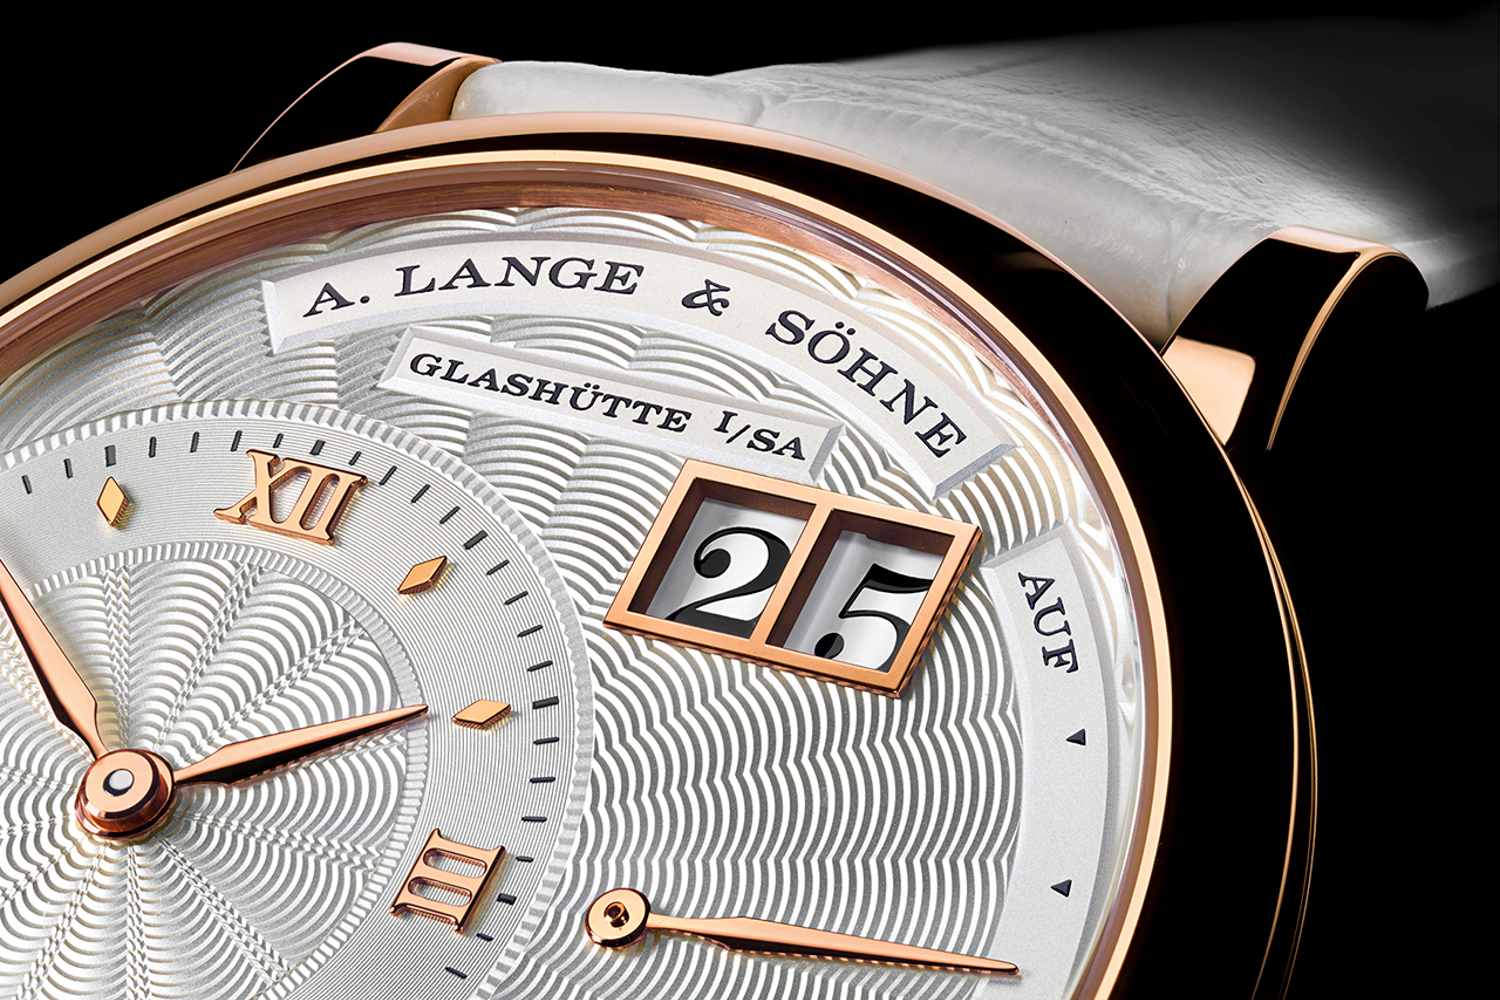 The A. Lange & Sohne Little Lange 1. Photo courtesy of A. Lange & Sohne.